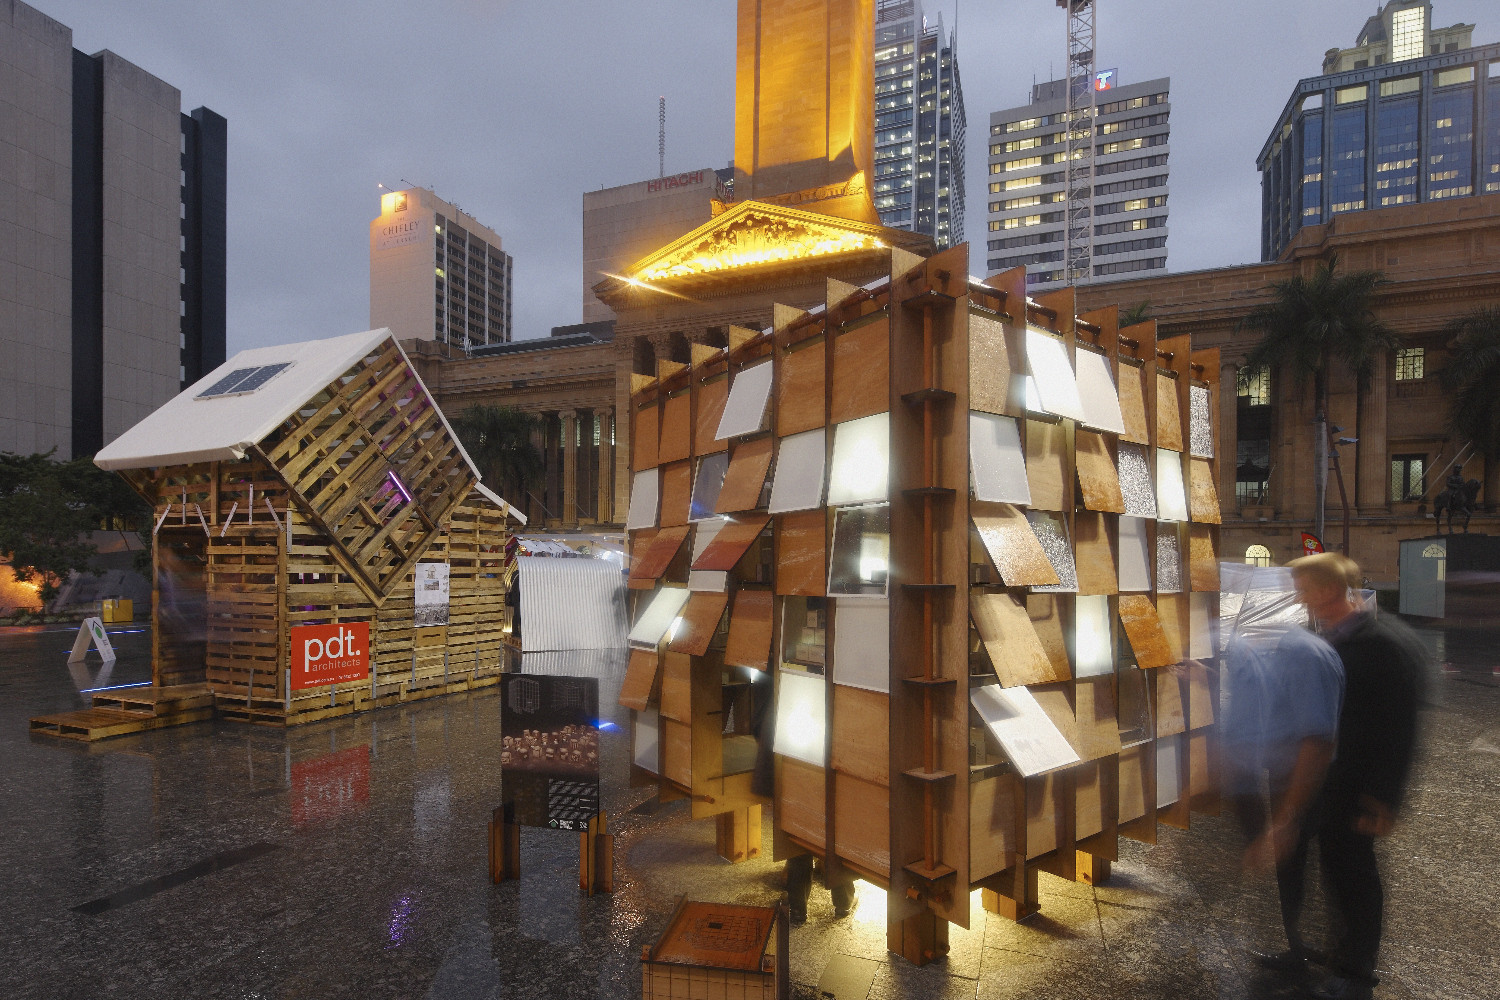 Emergency Shelter Winning Design / Nic Gonsalves + Nic Martoo, © Scott Burrows